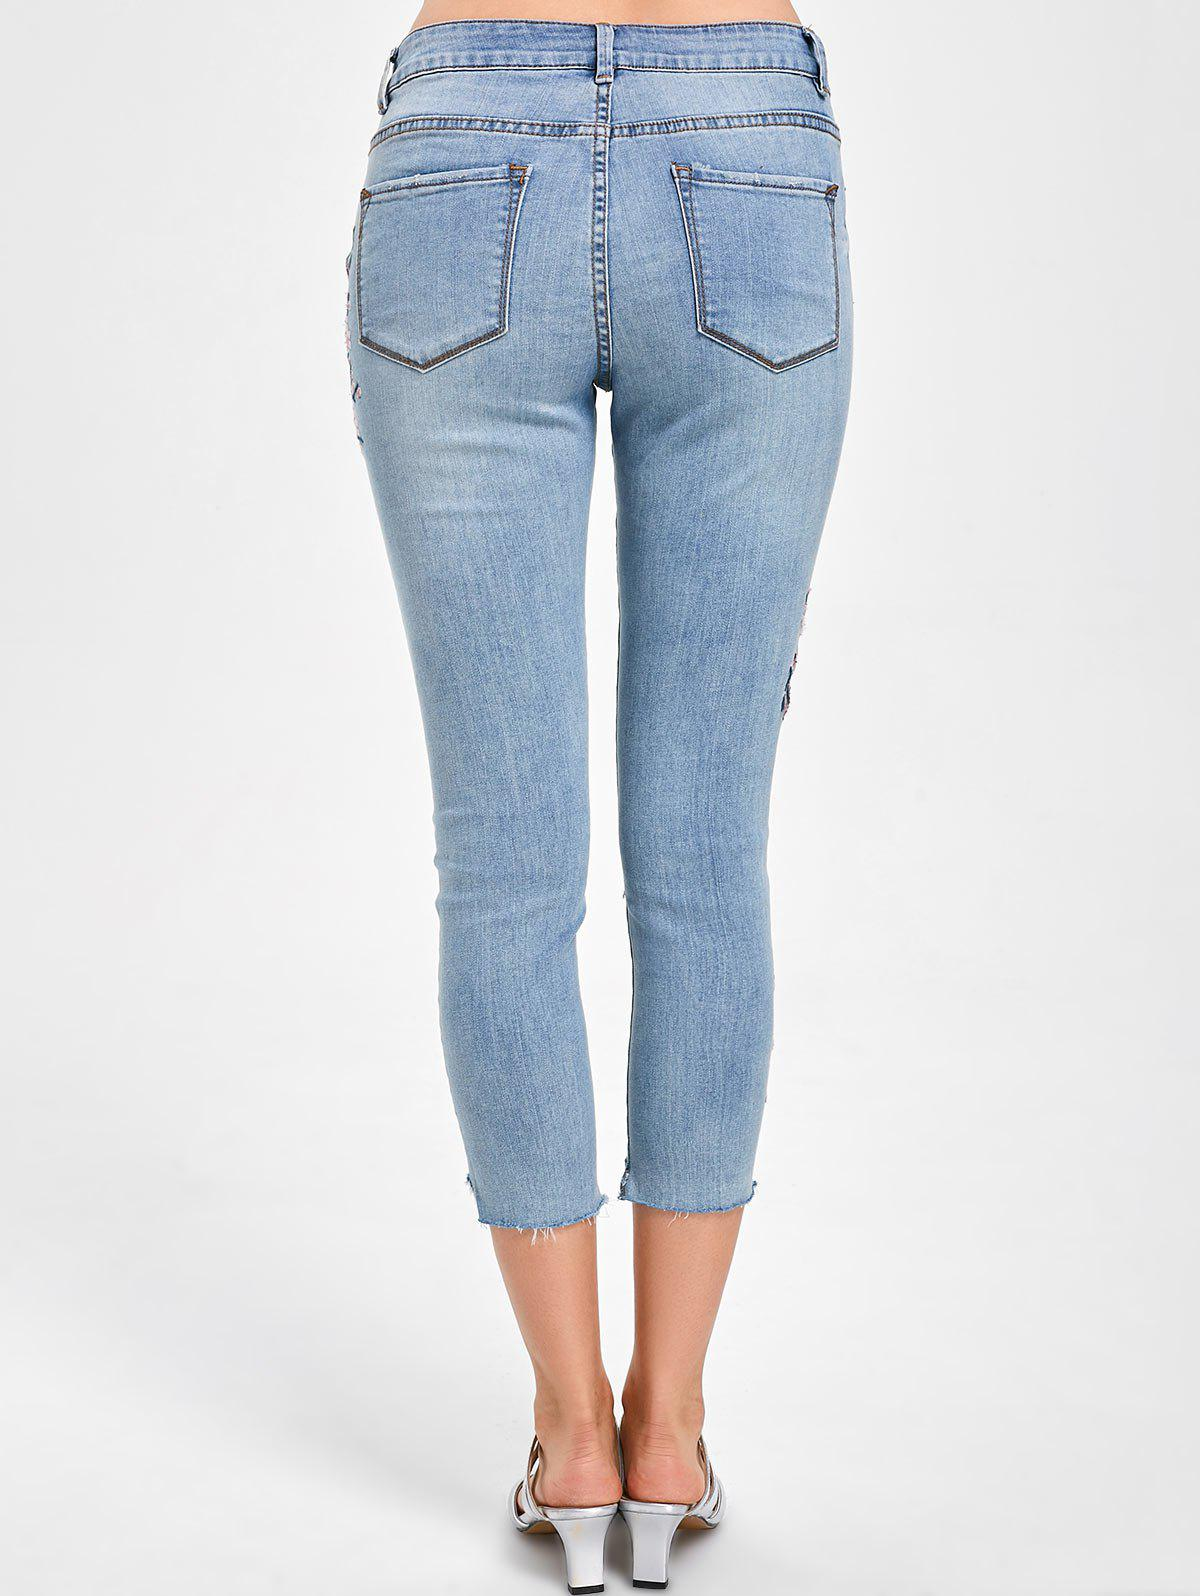 Embroidery Faded Capri Jeans - DENIM BLUE M